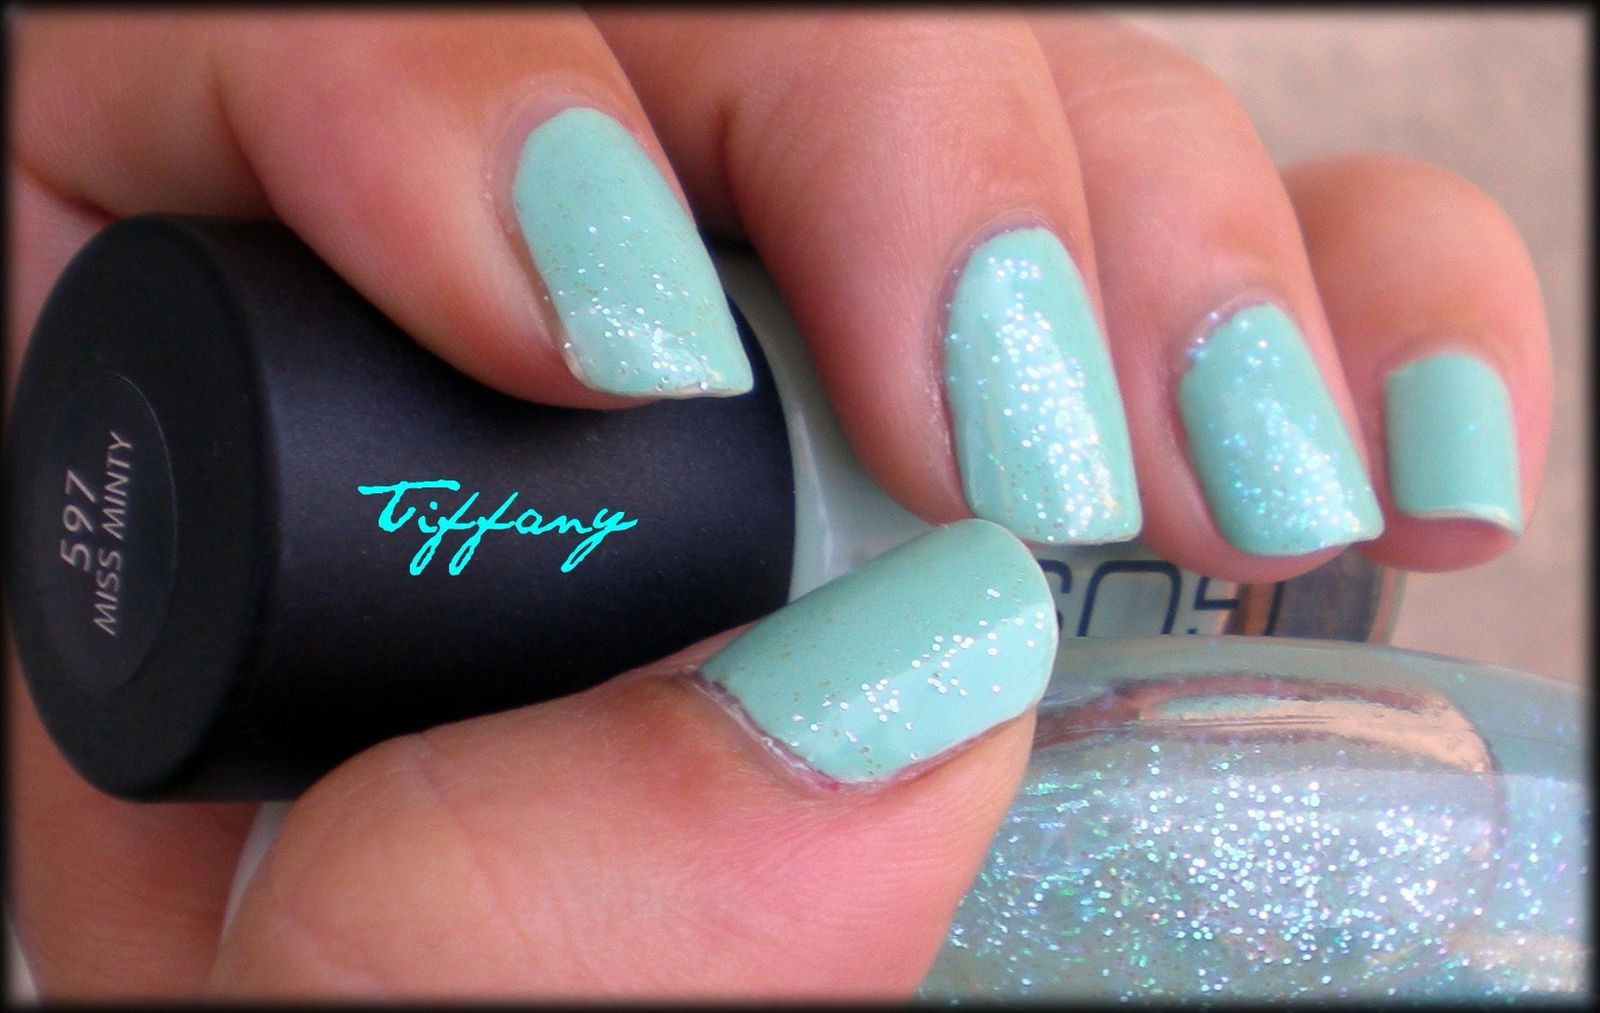 Ongles 17.08.11 (1)